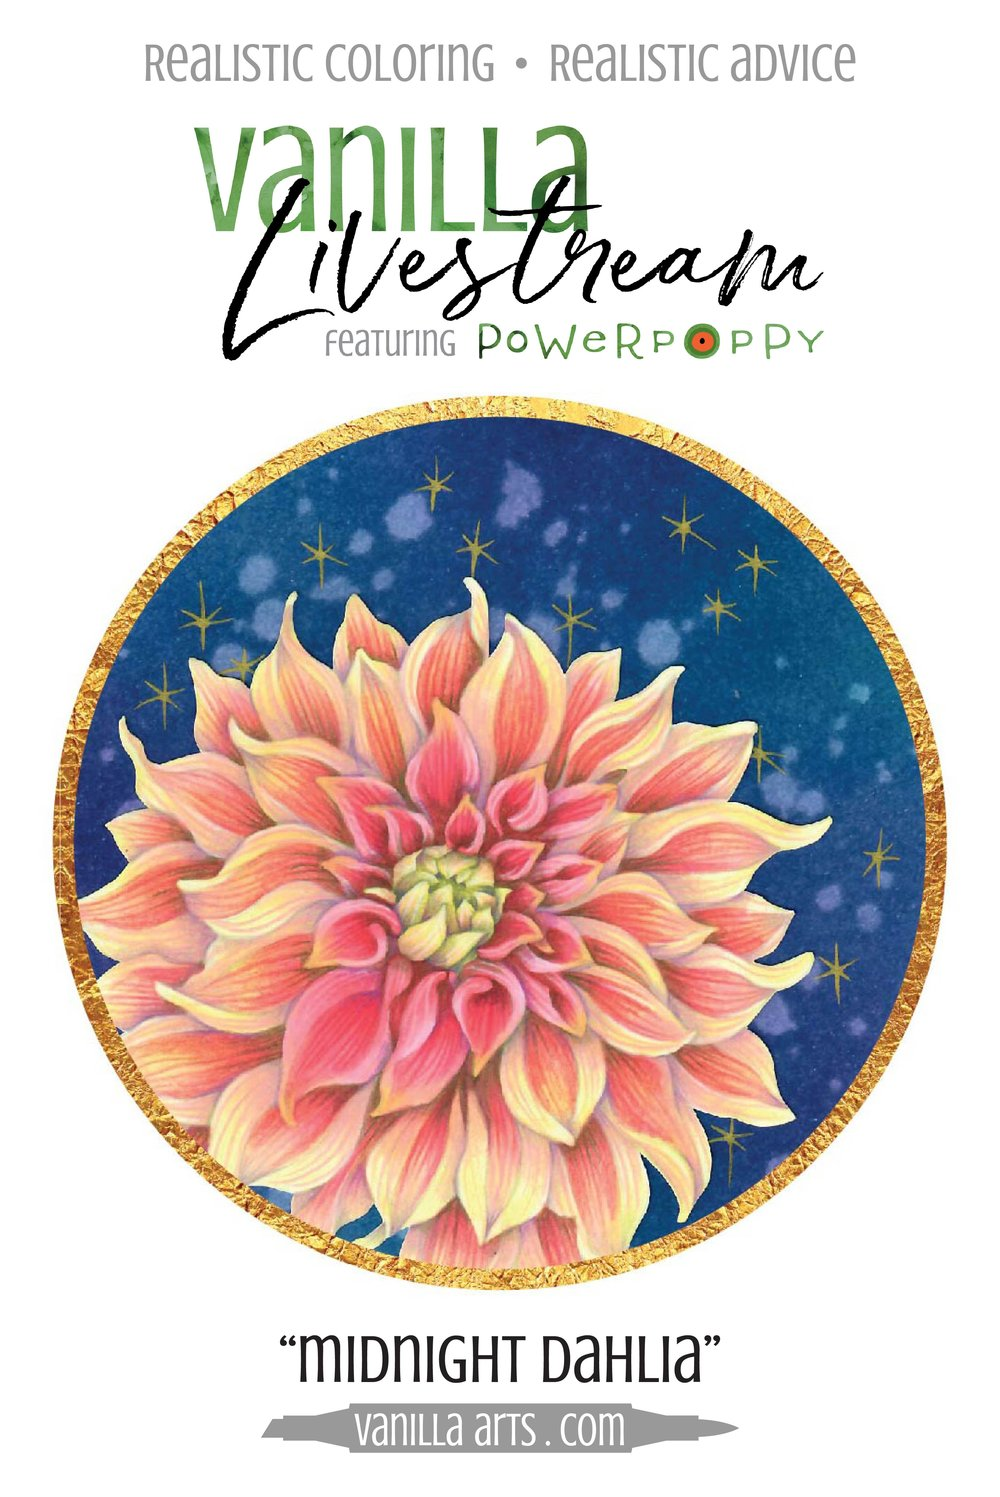 Vanilla Livestream online challenge lessons for Copic Markers and colored pencils. Learn to color dimensional flowers without creating muddy or murky depth. | VanillaArts.com | #copic #coloredpencil #coloringtips #adultcoloring #howtocolor